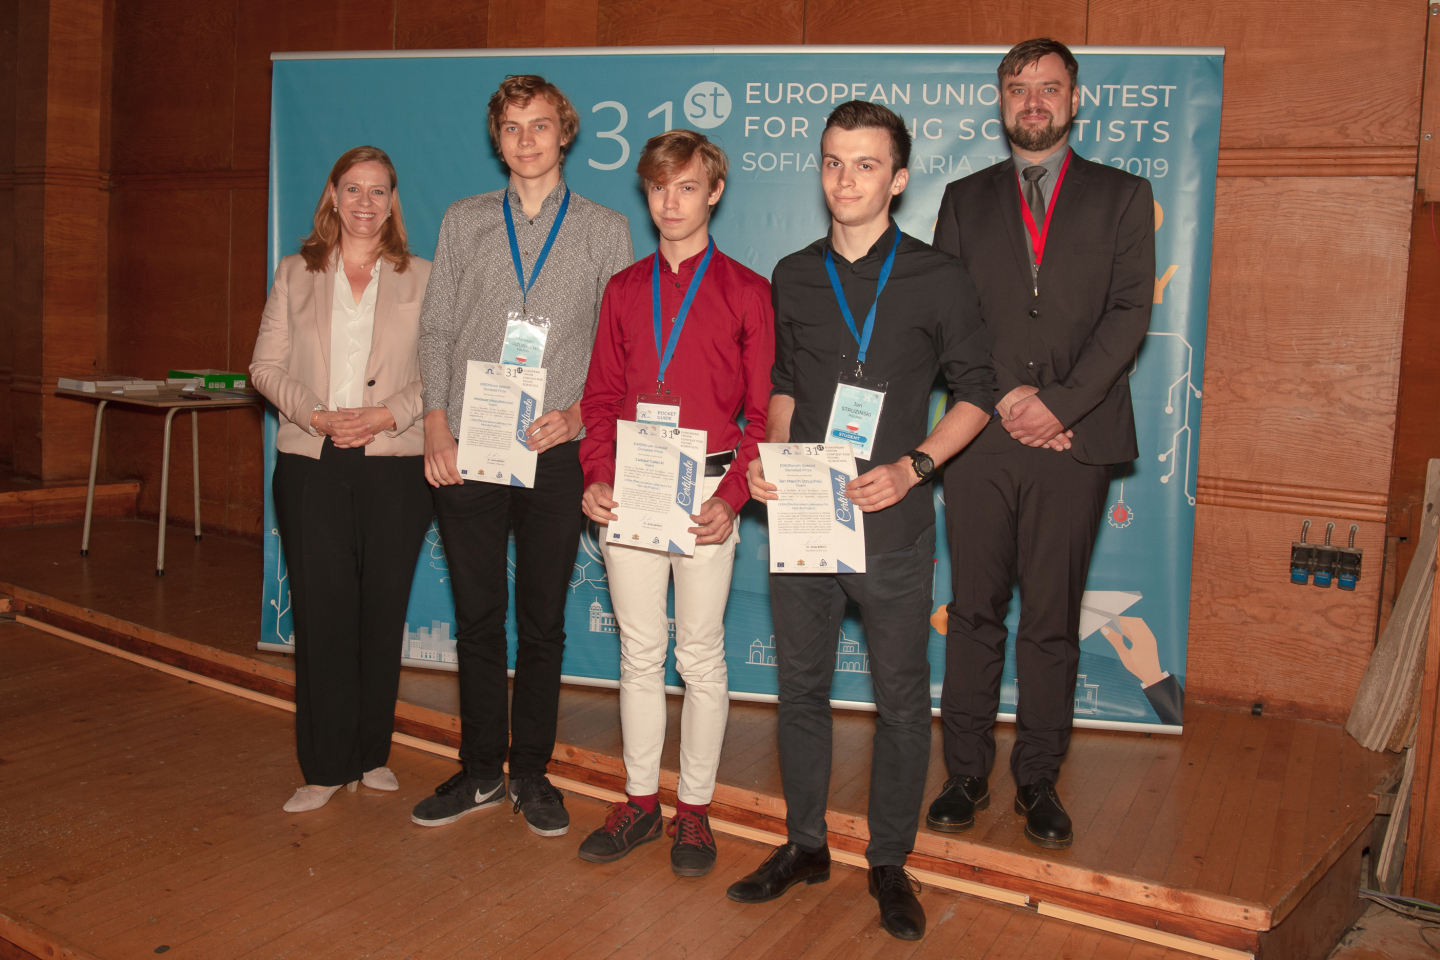 Winners of the EU Contest for Young Scientists (EUCYS) CERN special prize 2019